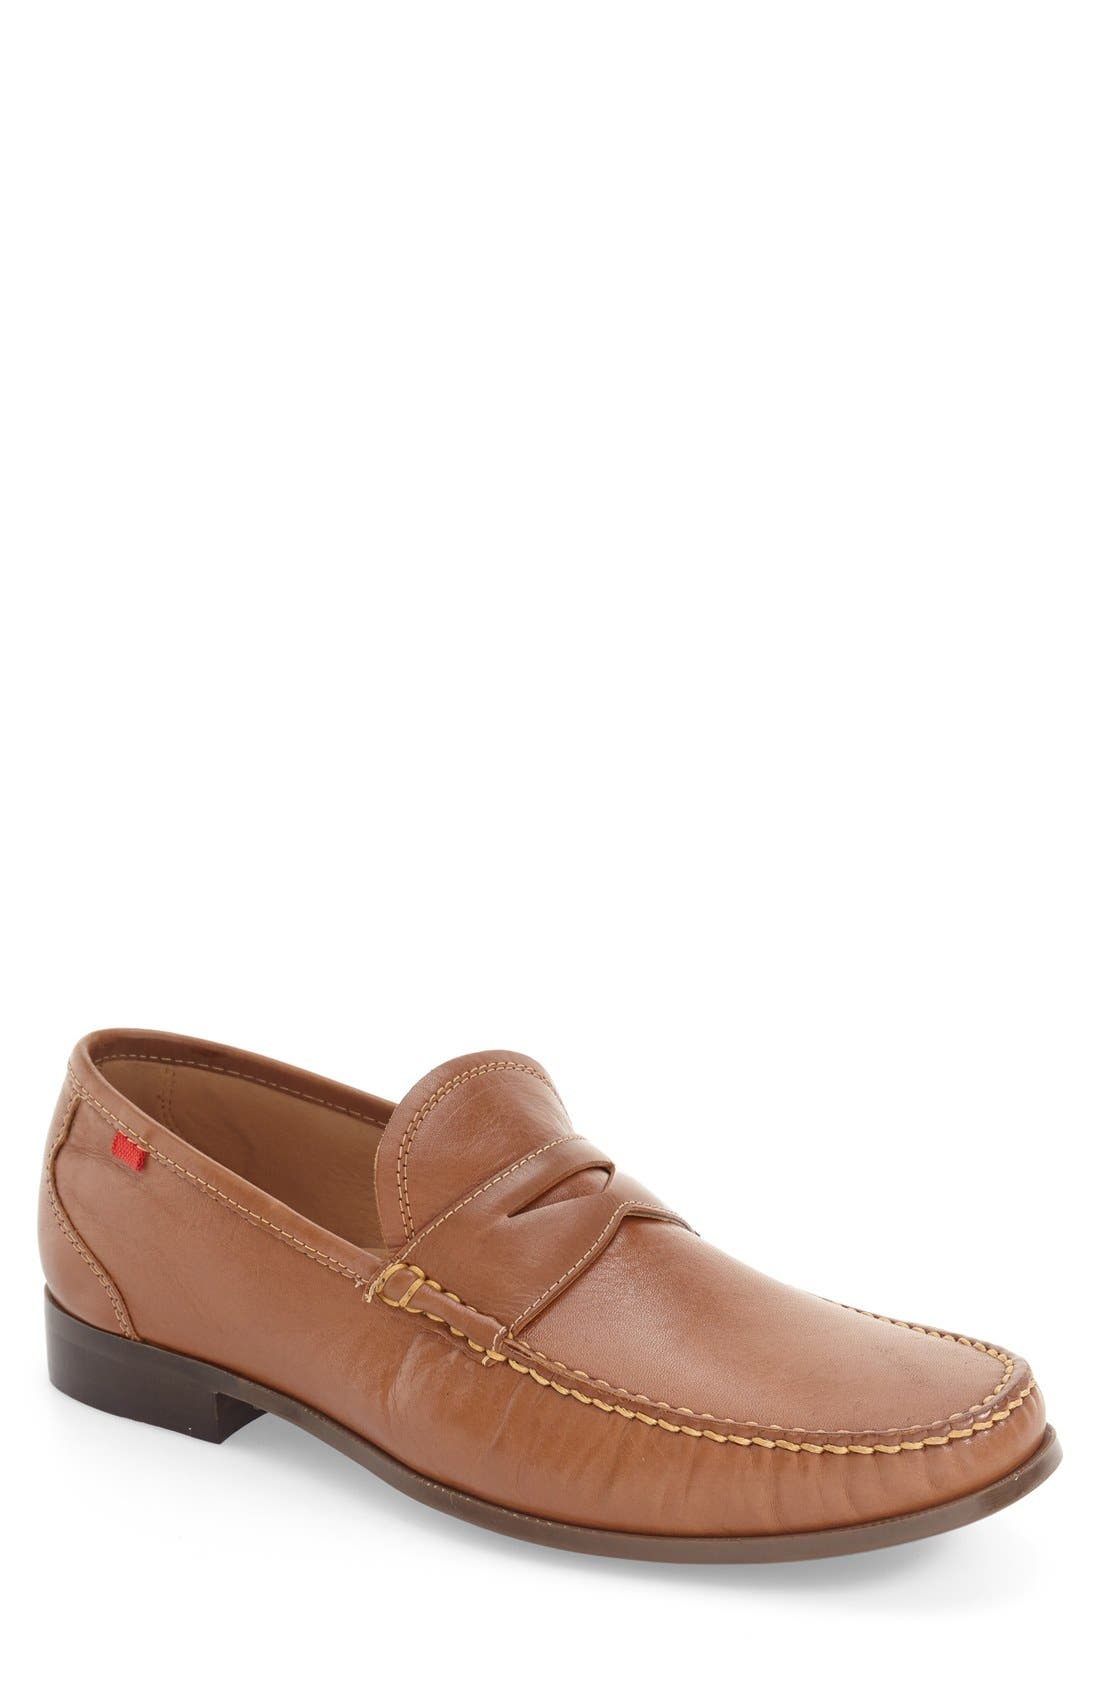 Penny Loafer,                         Main,                         color, Brown Leather